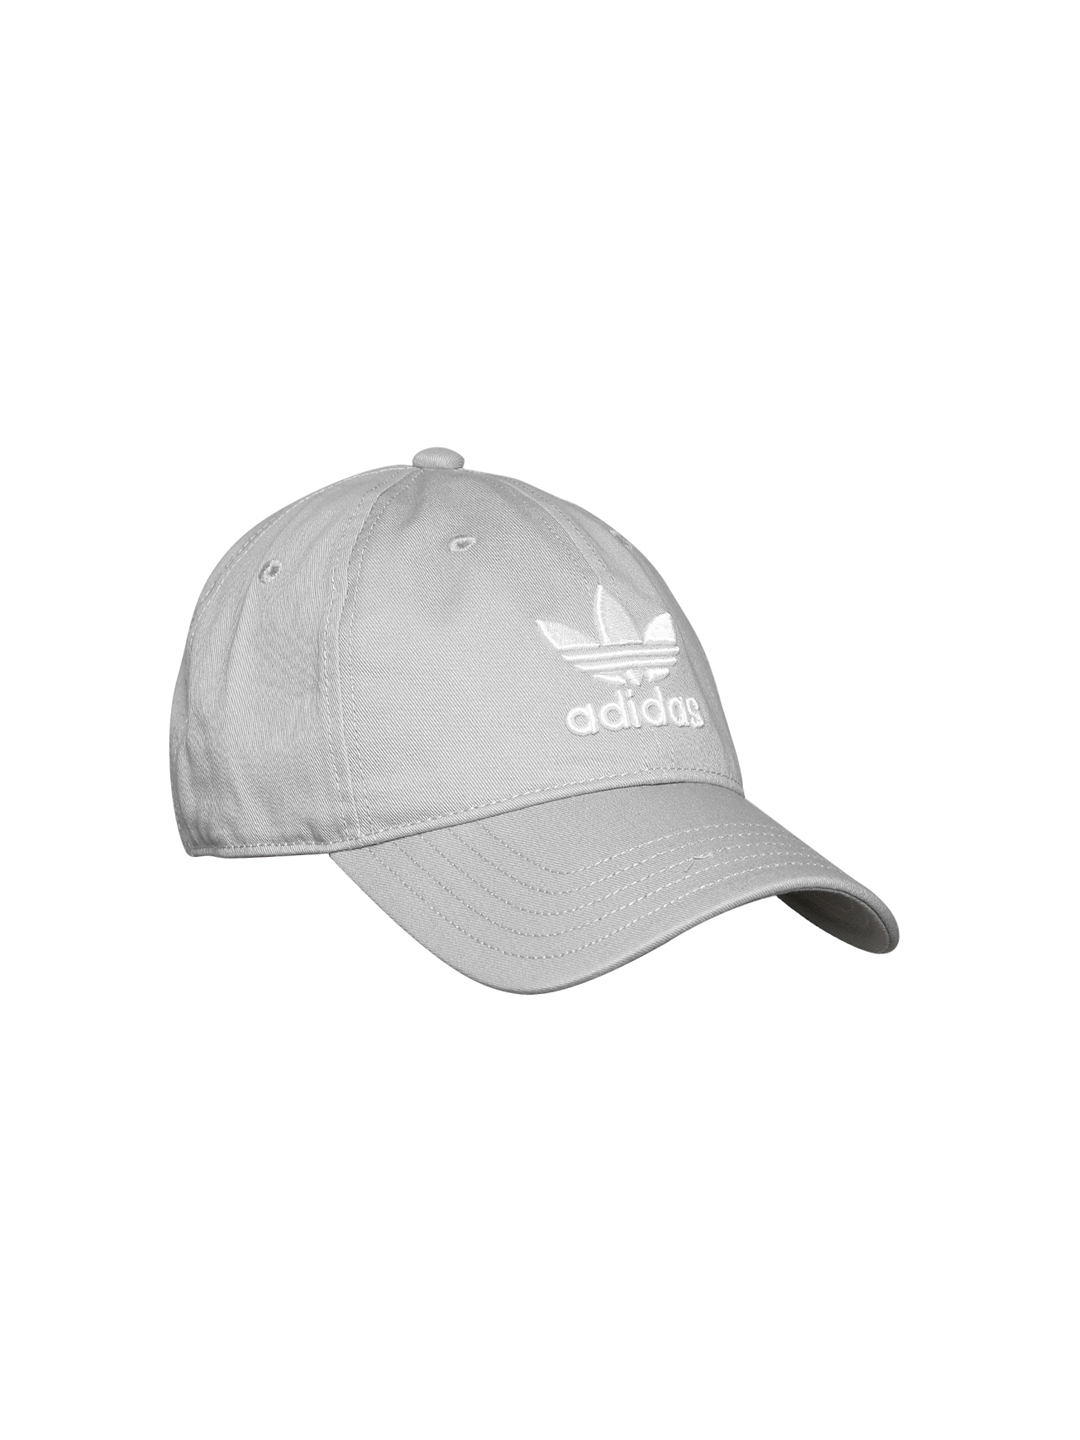 Buy Adidas Originals Unisex Grey TREFOIL Cap - Caps for Unisex ... 73abb96baf32